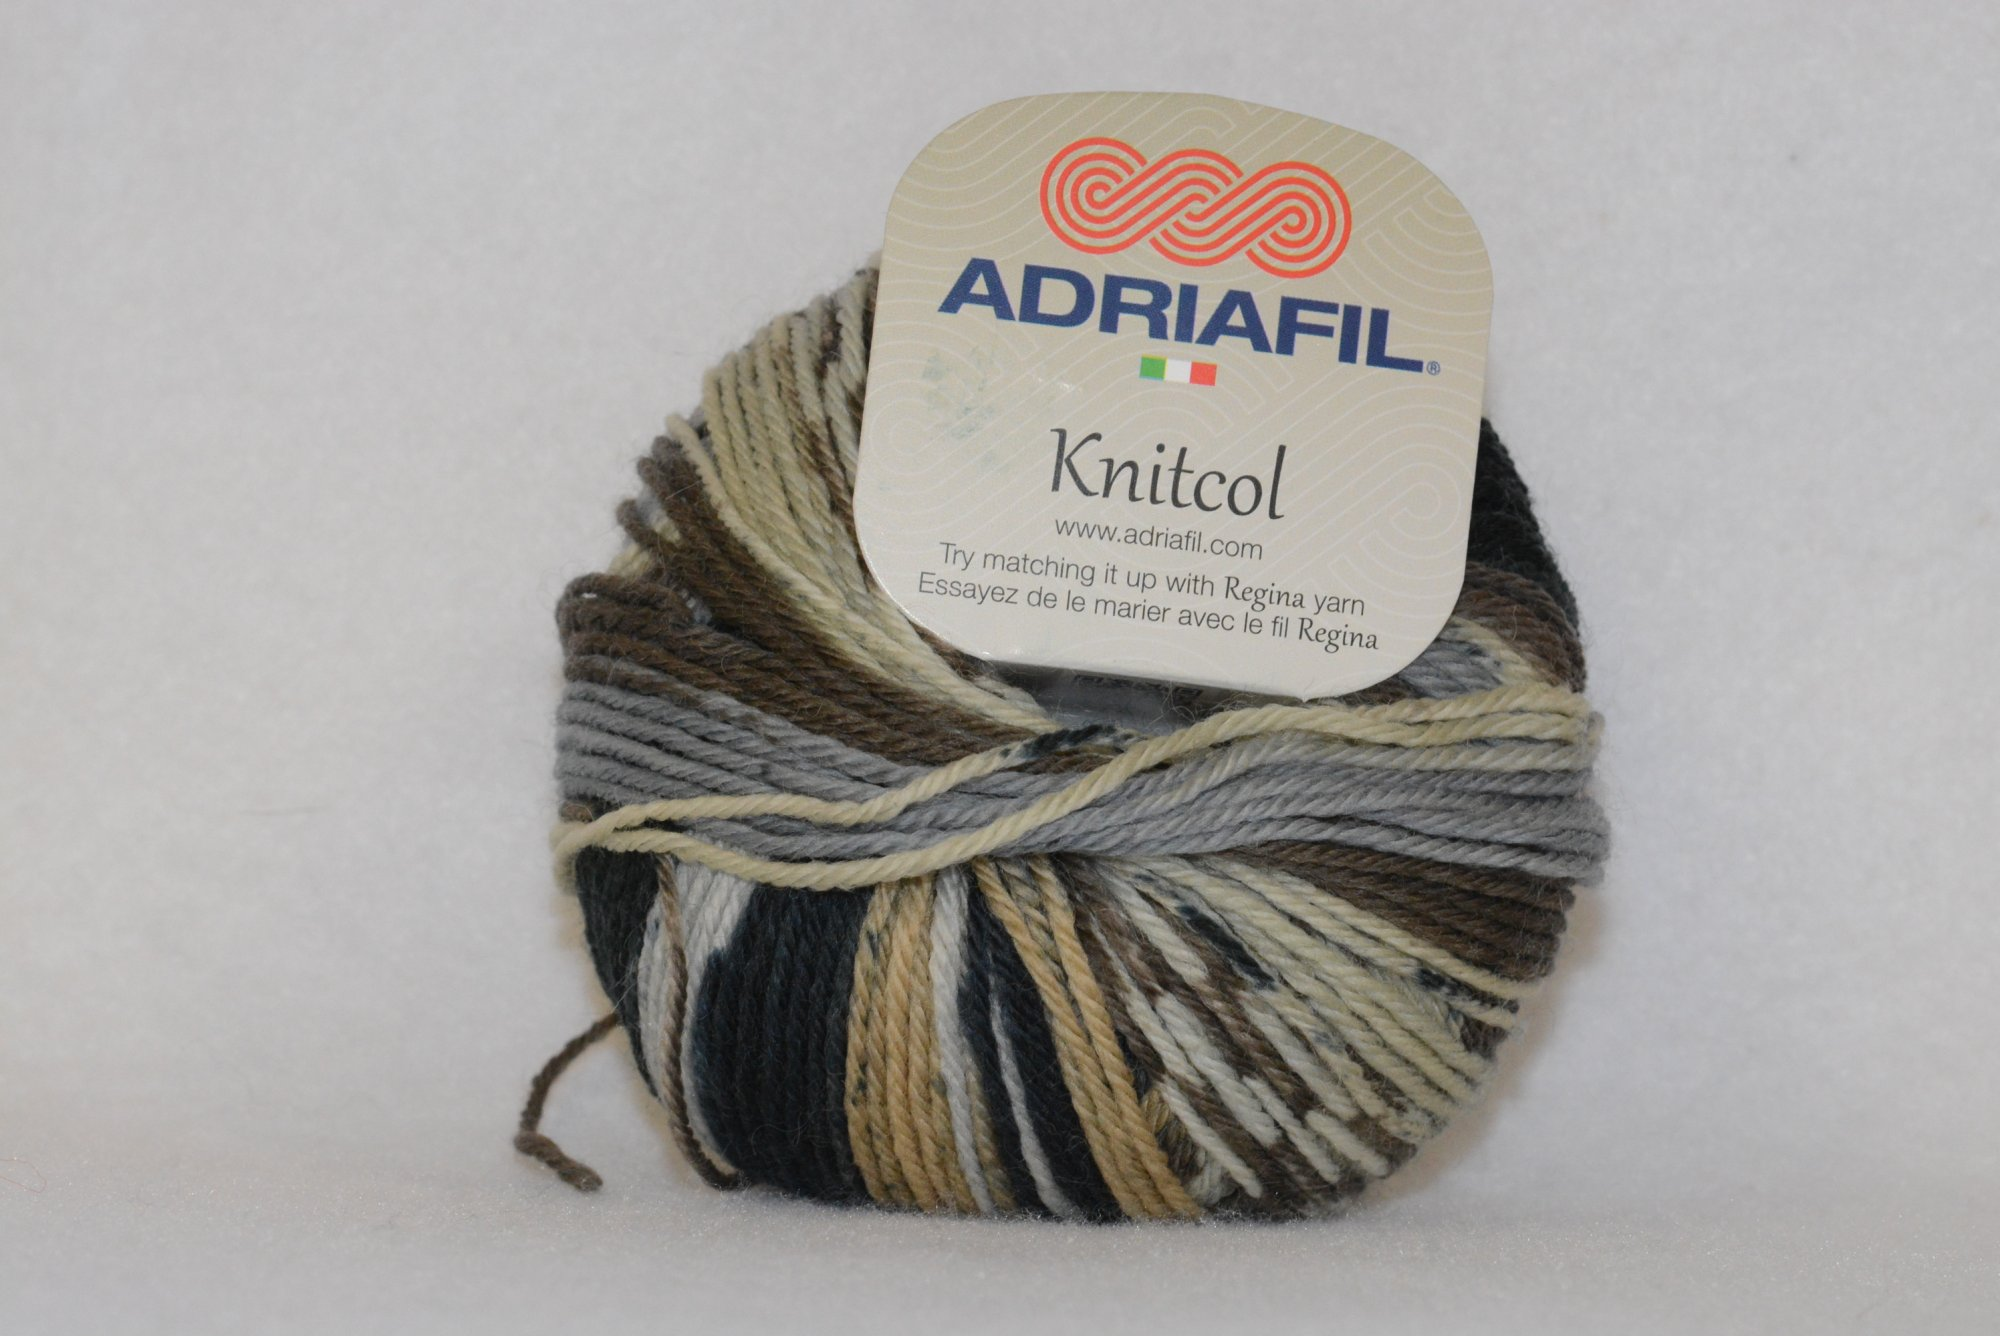 Knit Col - Color 57 - Grey/brown/beige